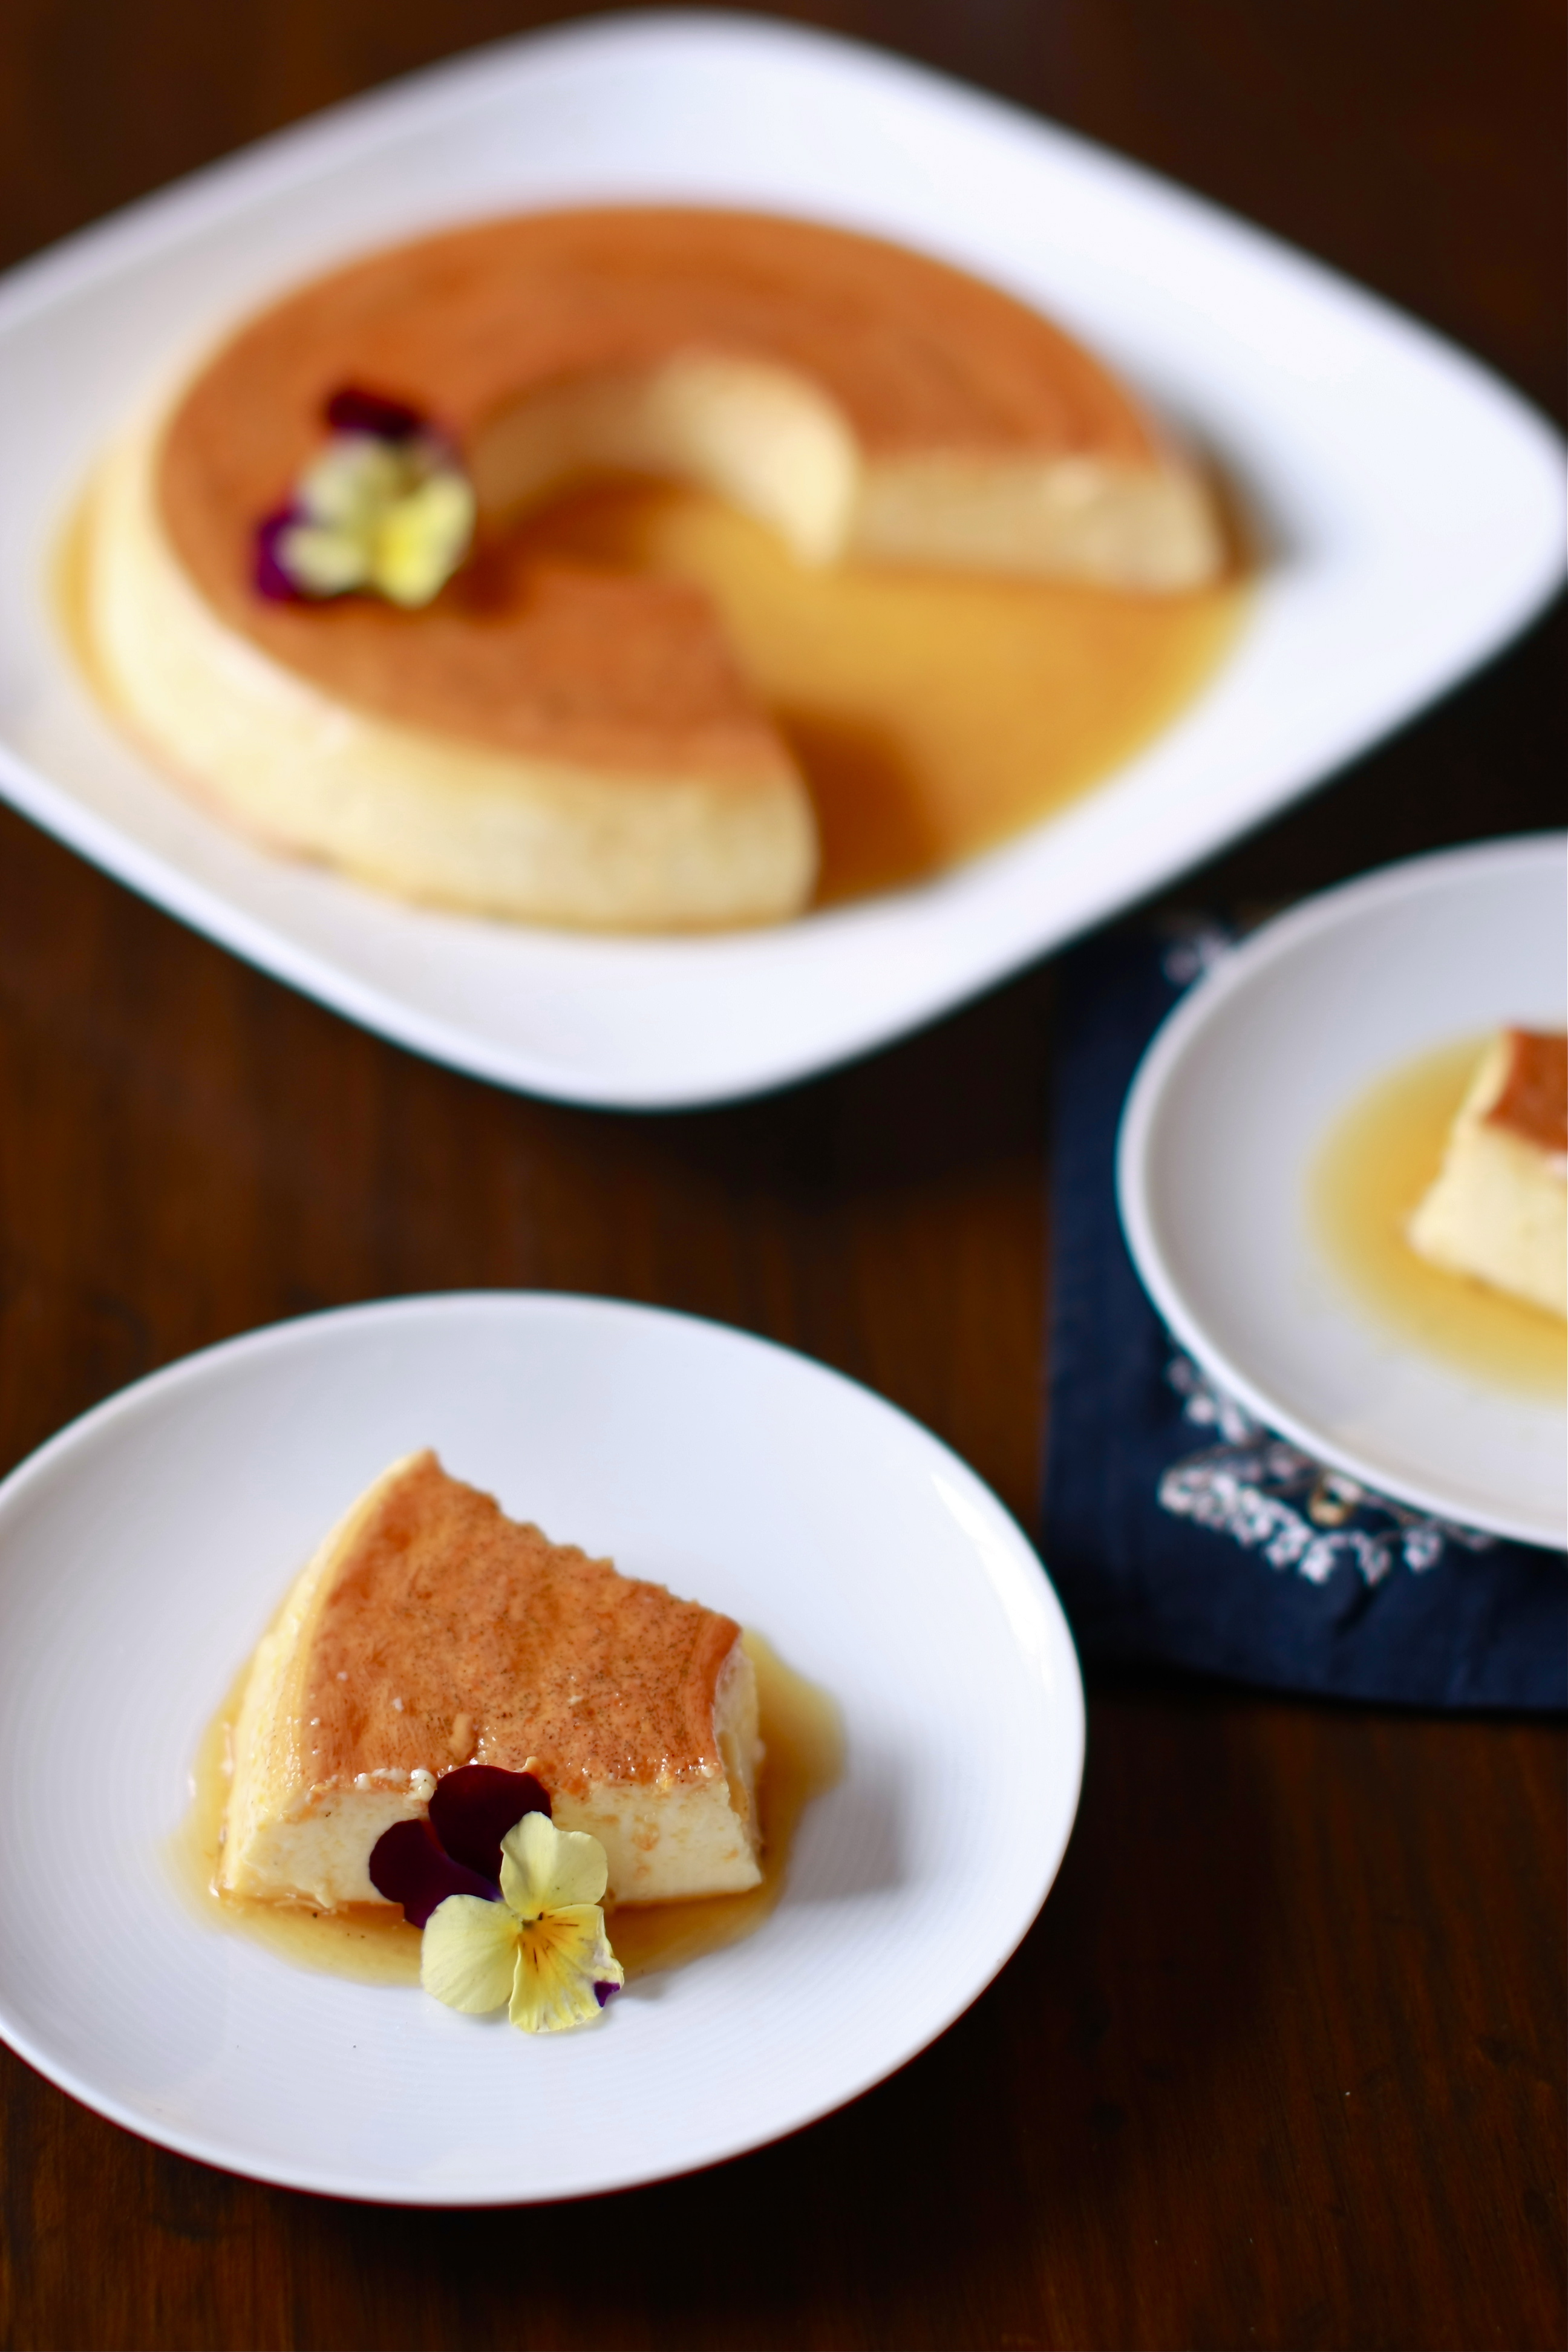 Classic Creme Caramel with Orange and Vanilla | Wandering Spice